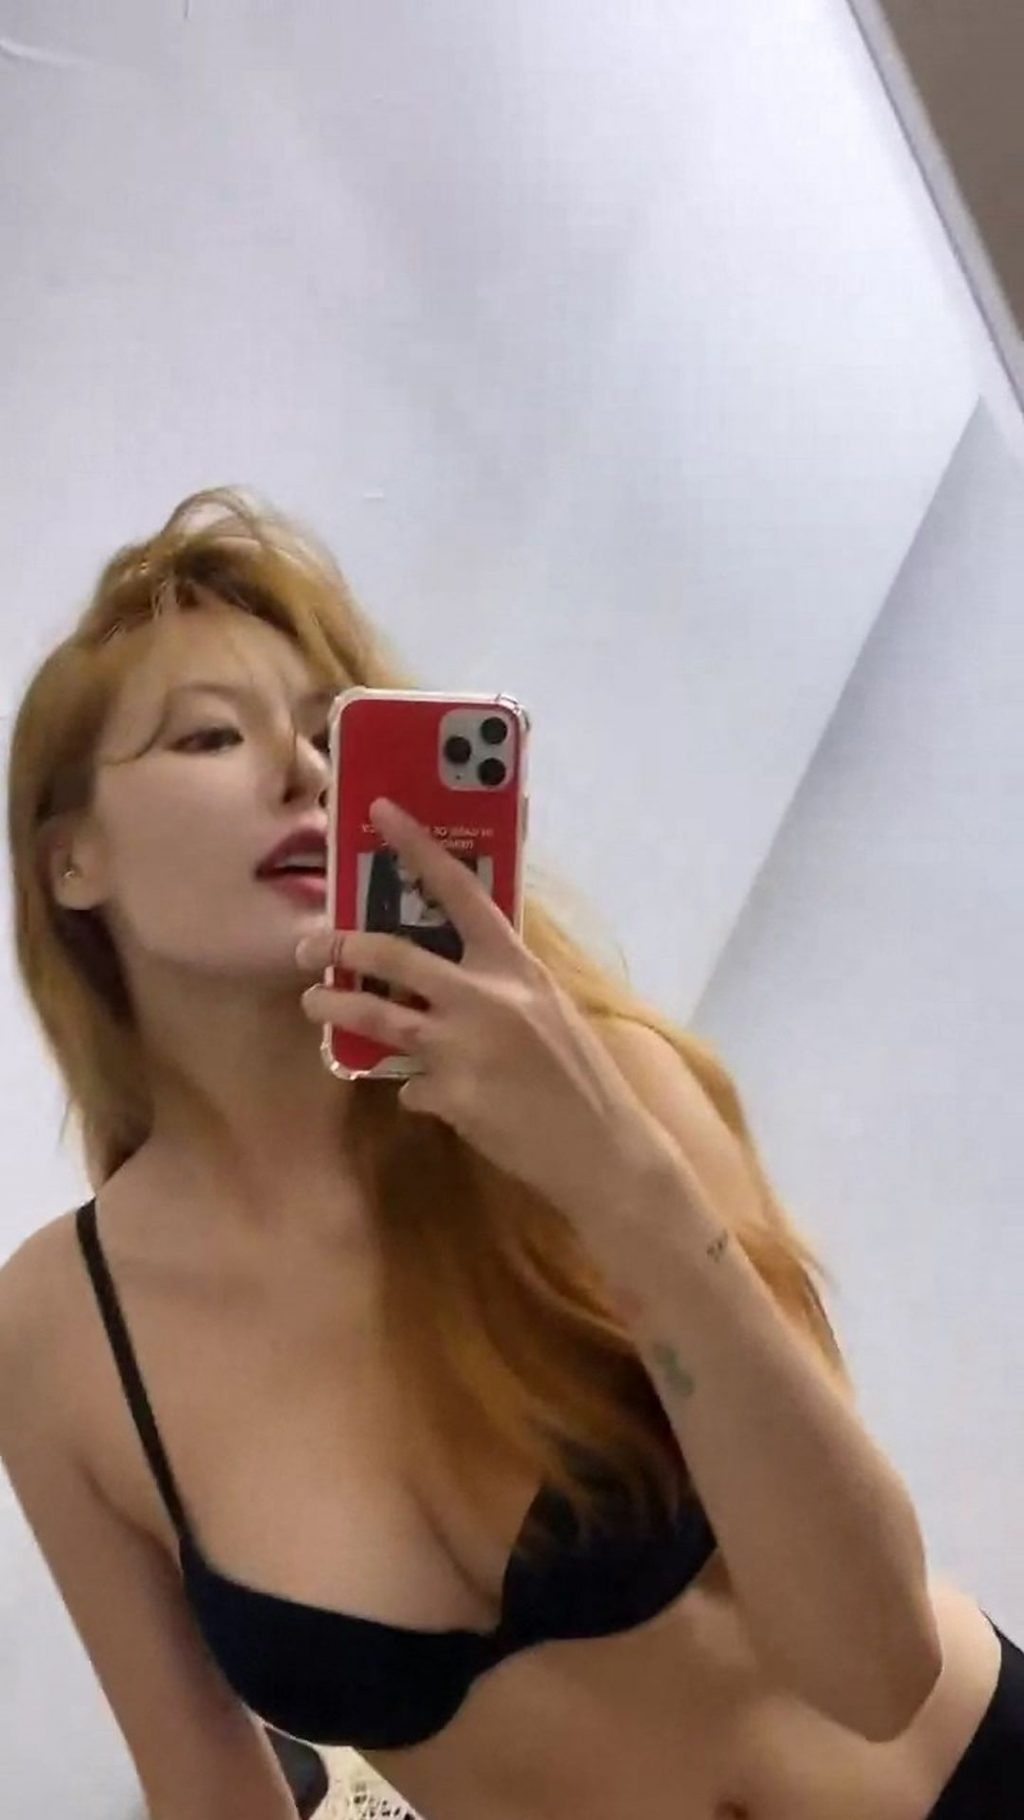 Hyuna's Hot Collection (11 Photos + GIFs)